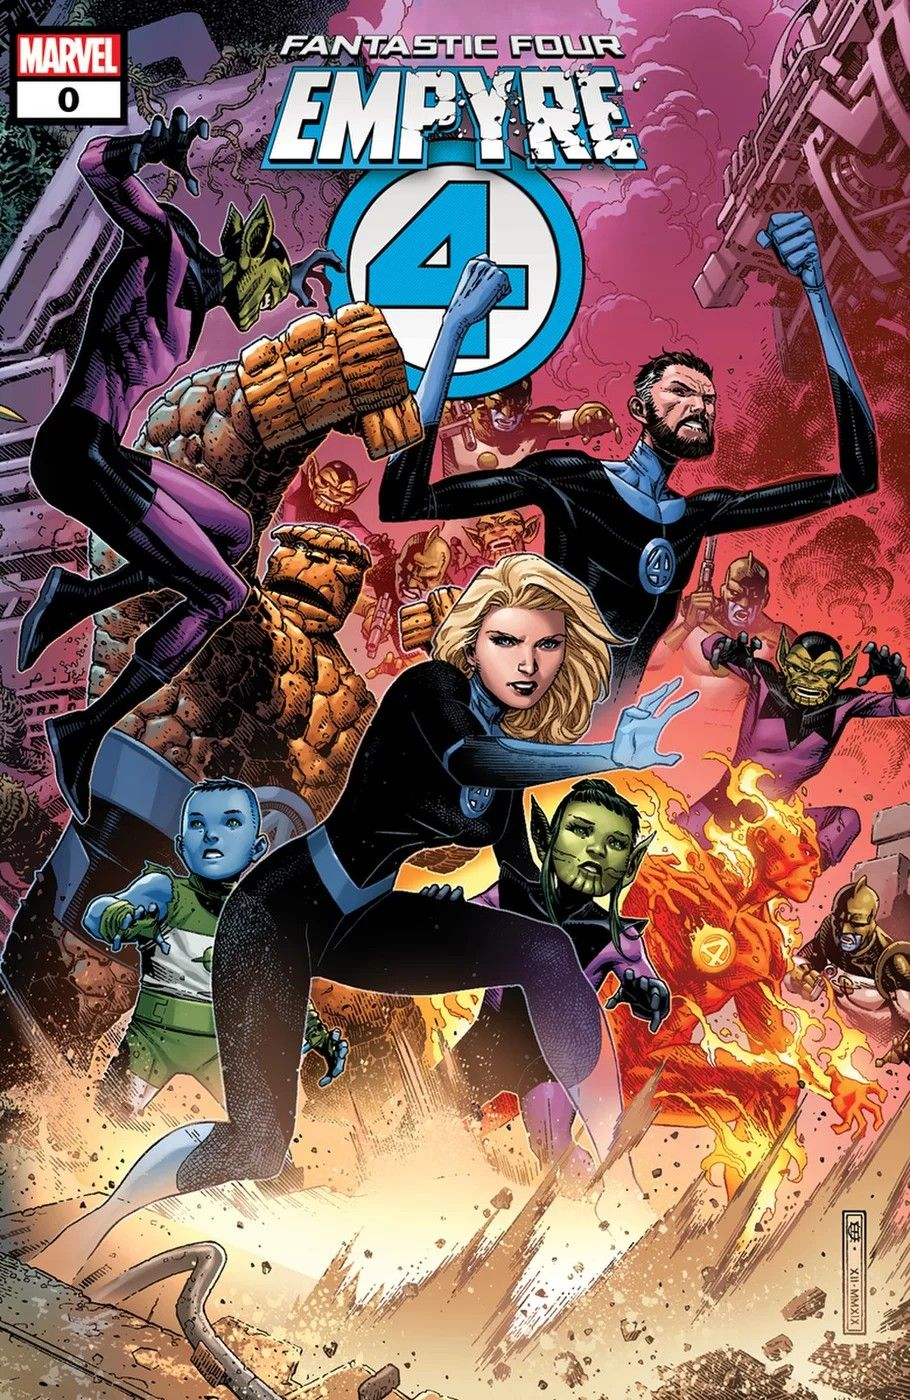 Pin By Chris Gianoulakis On Make Mine Marvel In 2020 Fantastic Four Fantastic Four Comics Marvel Comics